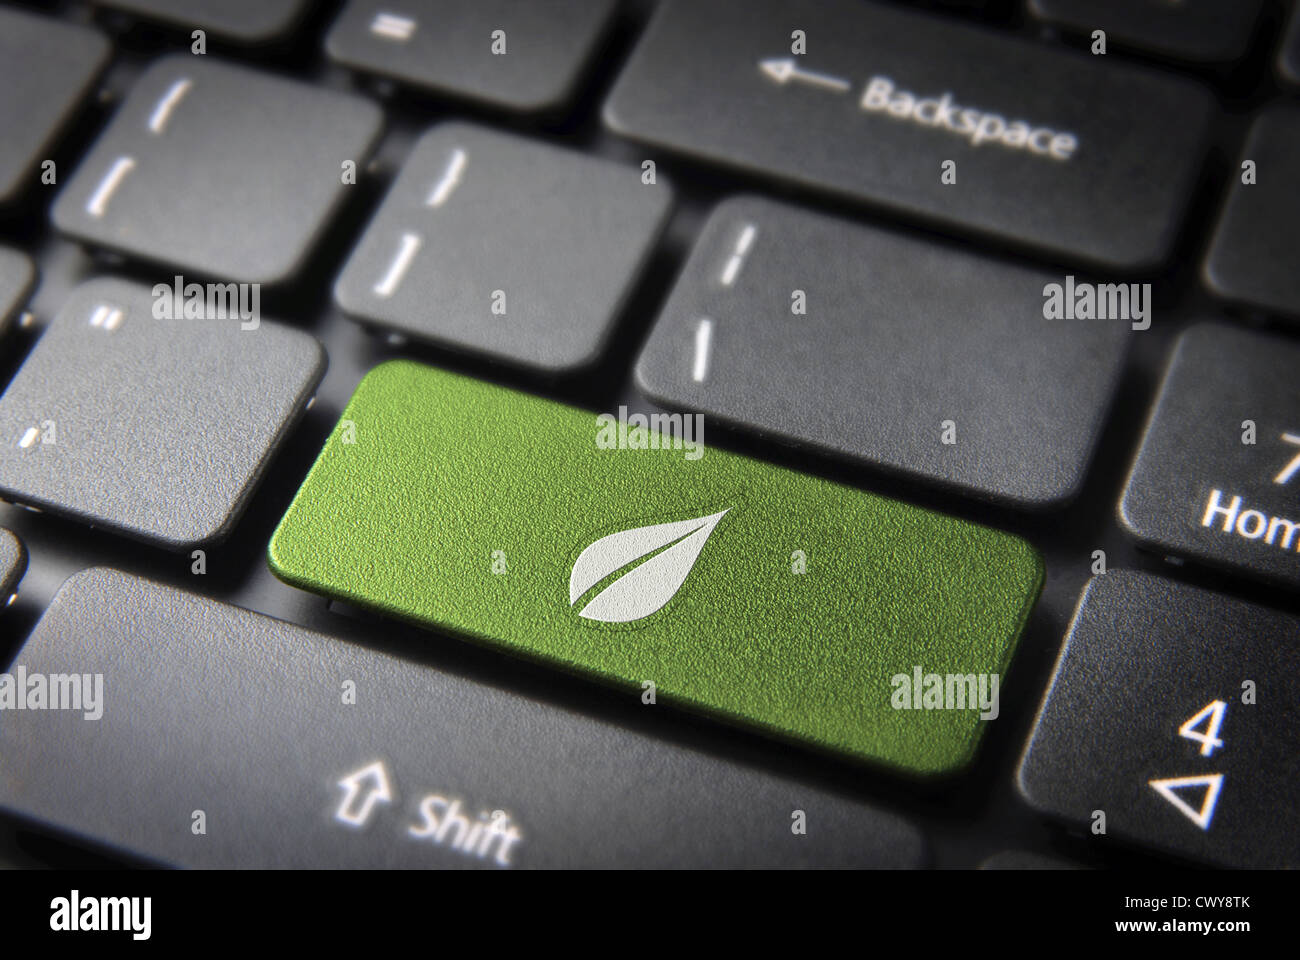 Green Energy Key With Leaf Icon On Laptop Keyboard Included